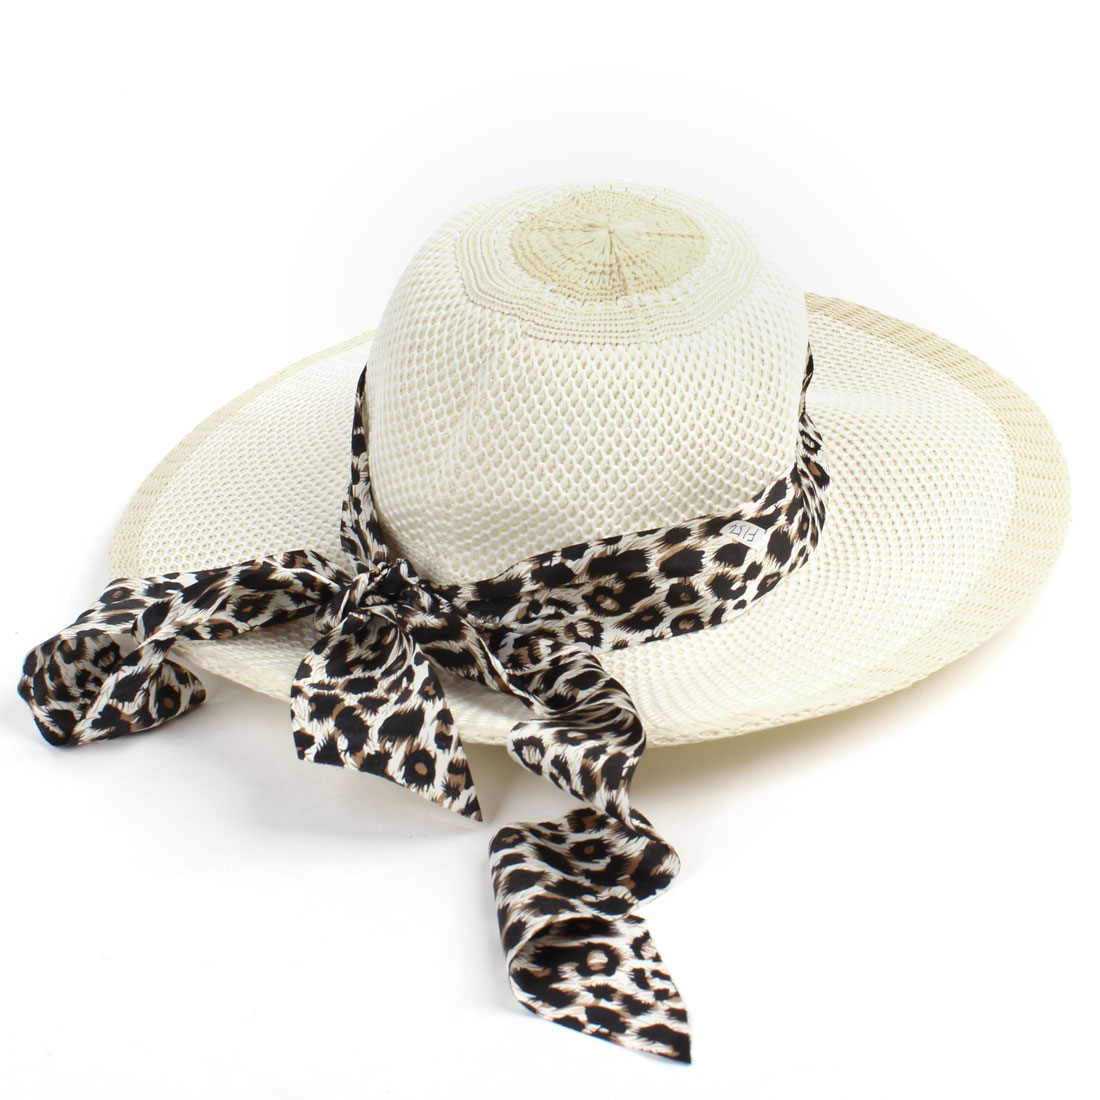 Head Wear Leopard Printed Band Linen Braided Cap Hat Beige for Ladies